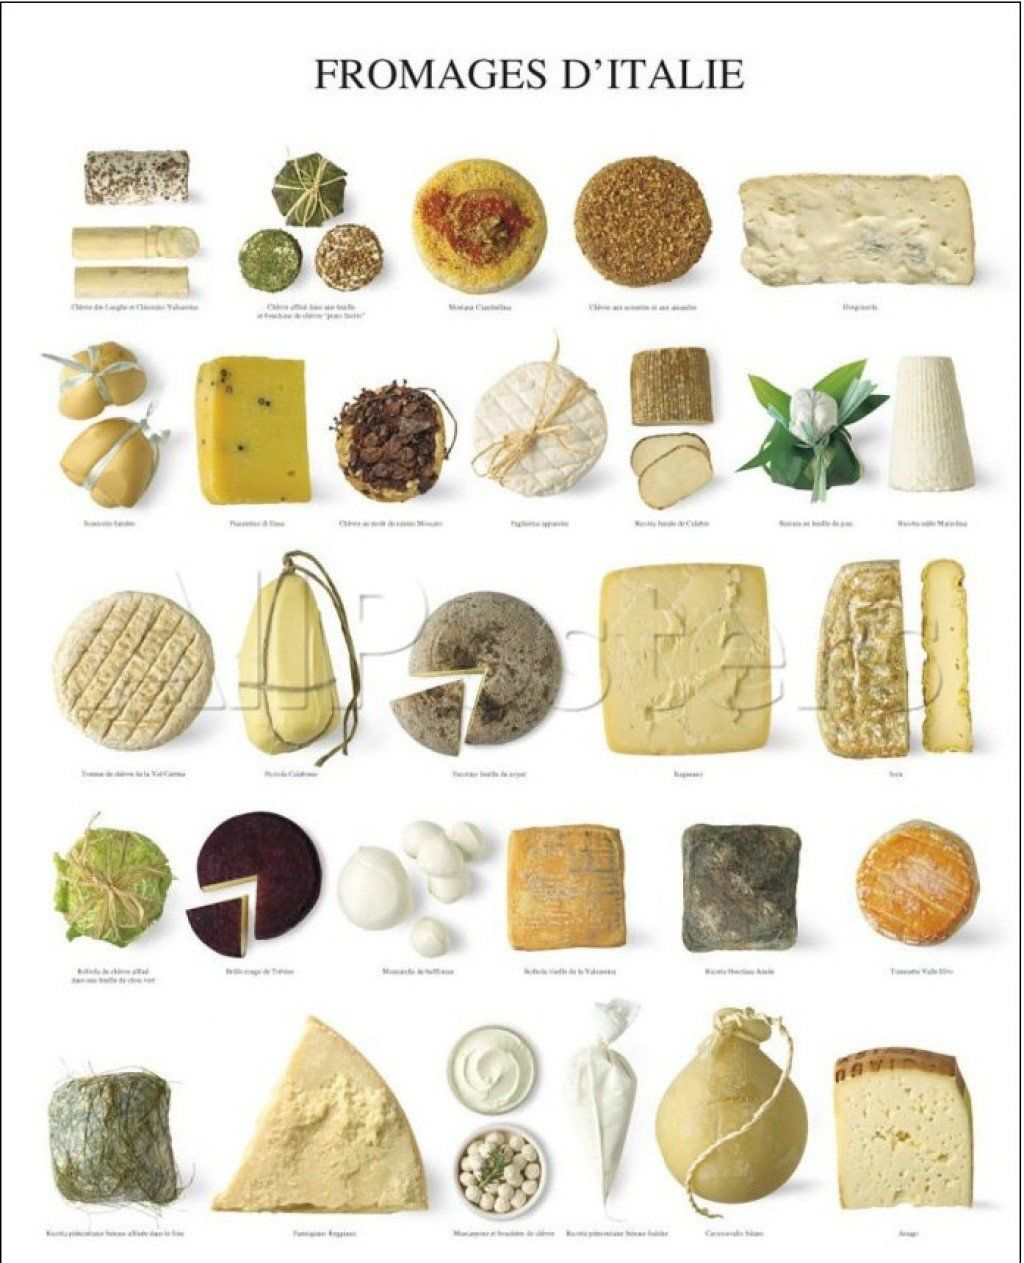 Italy boasts more than 450 cheeses. Many of these are made by traditional methods in their regions of origin. From Asiago to Pecorino Romano, Italian cheeses are among the world's most favorite and are enjoyed in Italy and abroad.